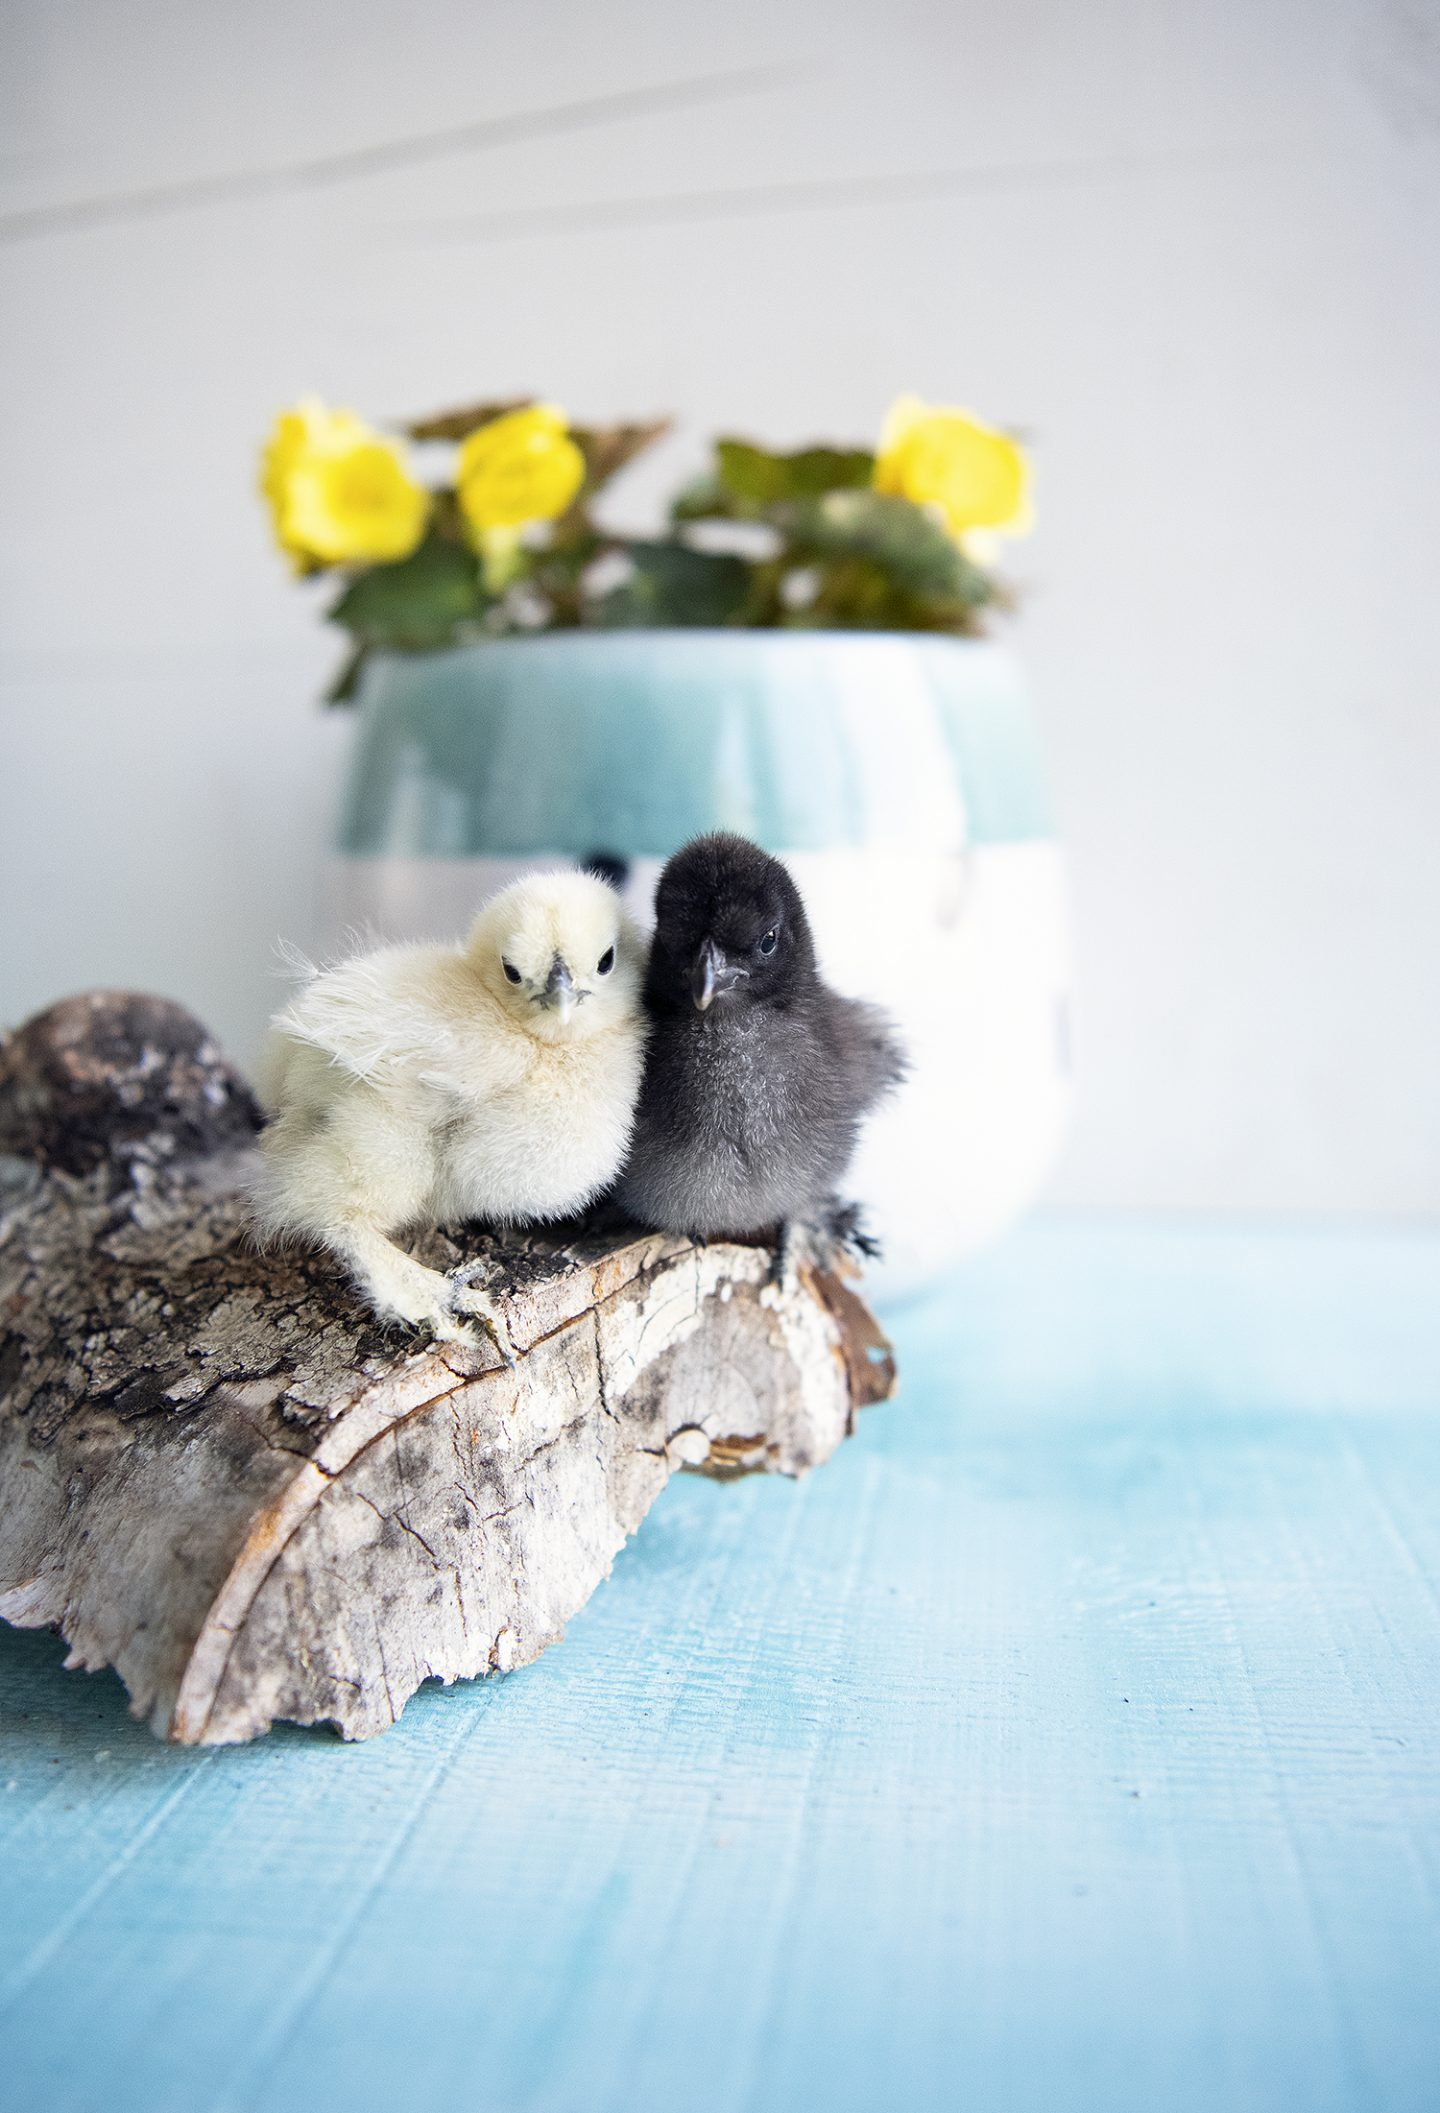 White Silkie Chick and Black Silkie Chick